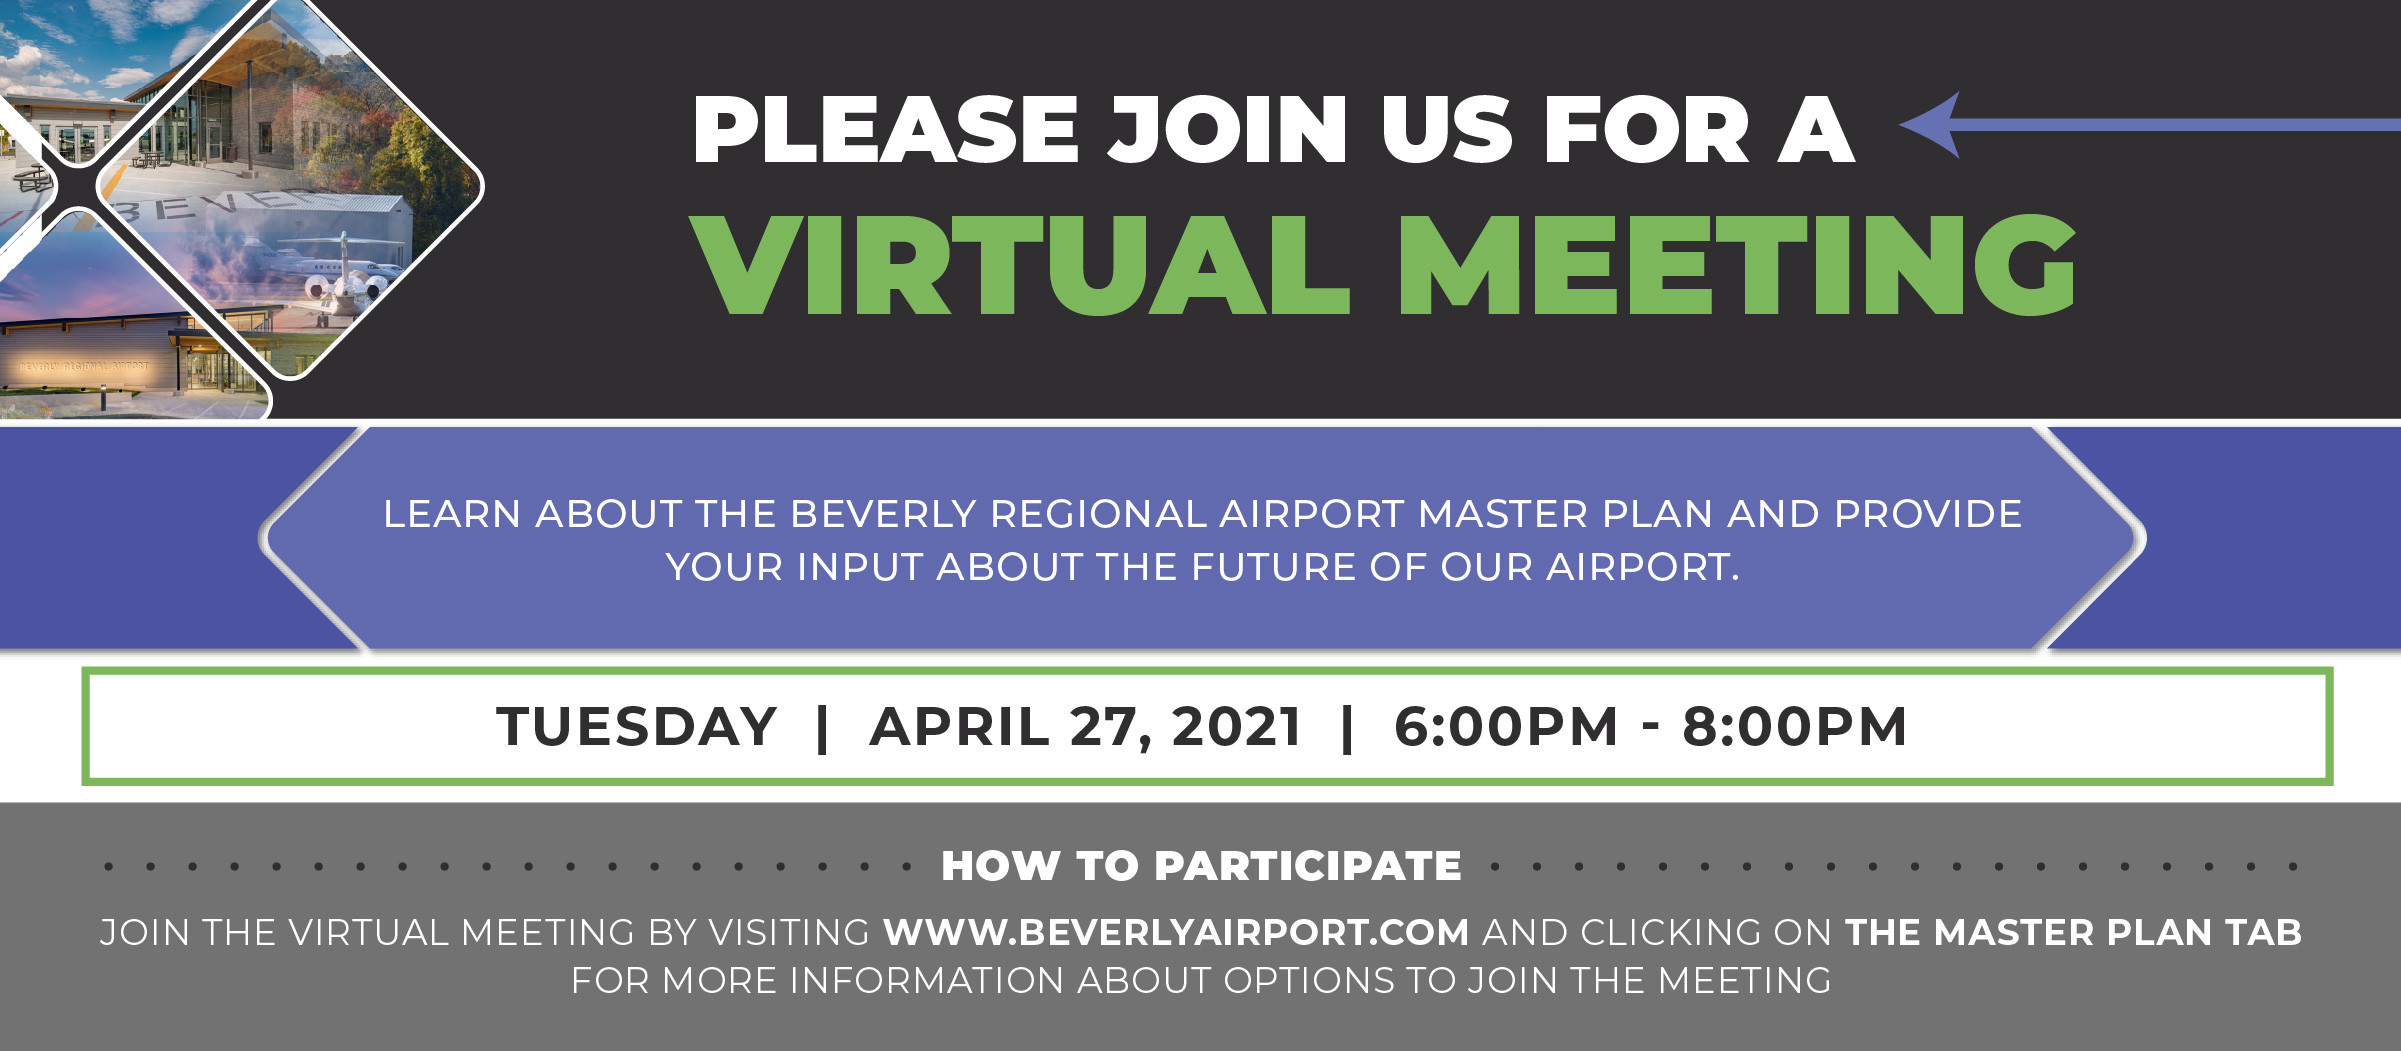 Beverly Airport Virtual Meeting Event